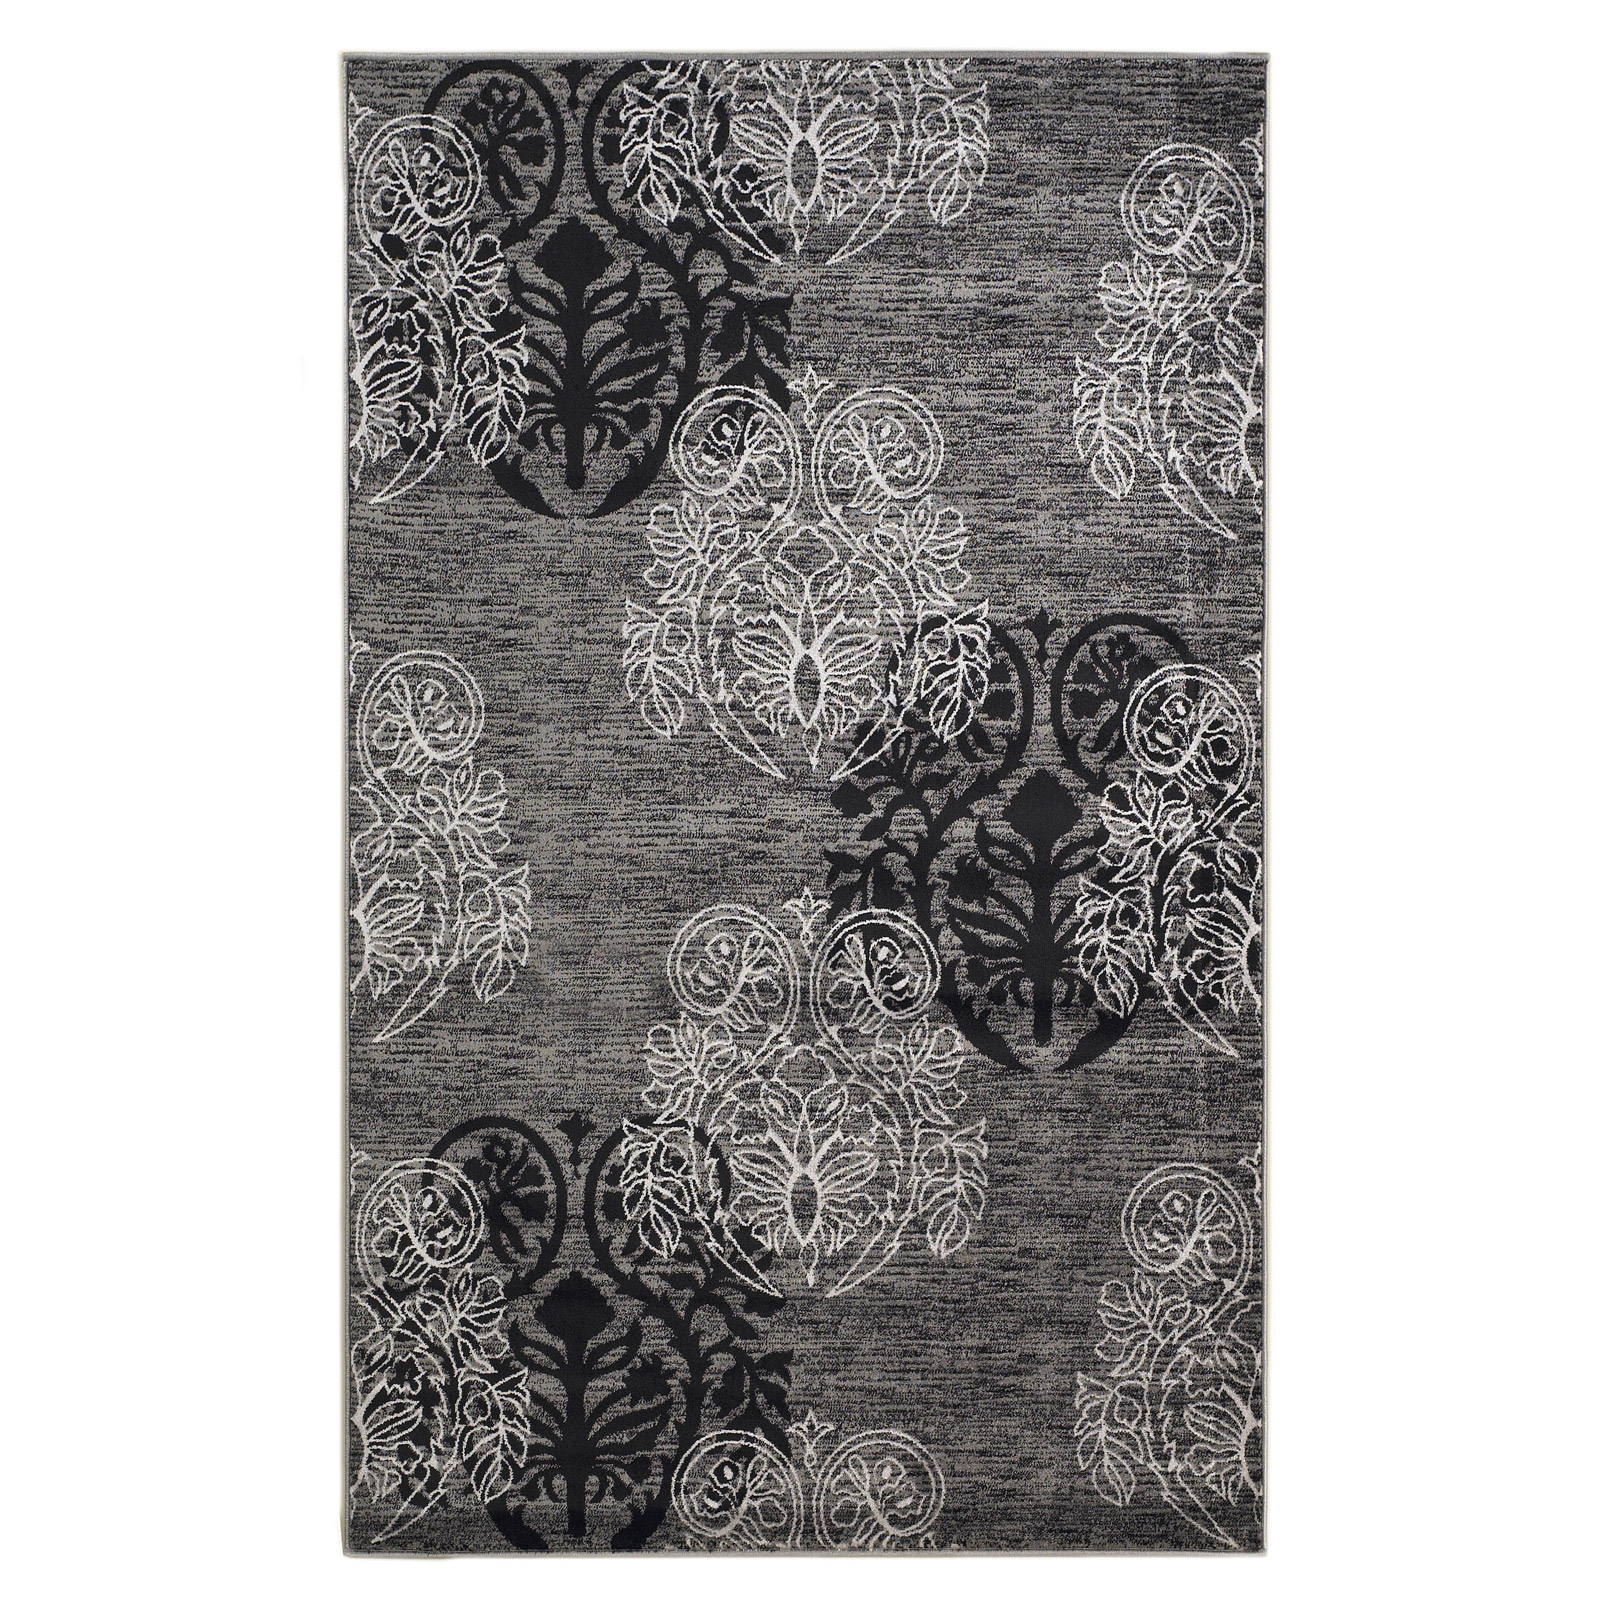 Milan Collection Mn2858 5x7 Area Rug By Linon In Patterned